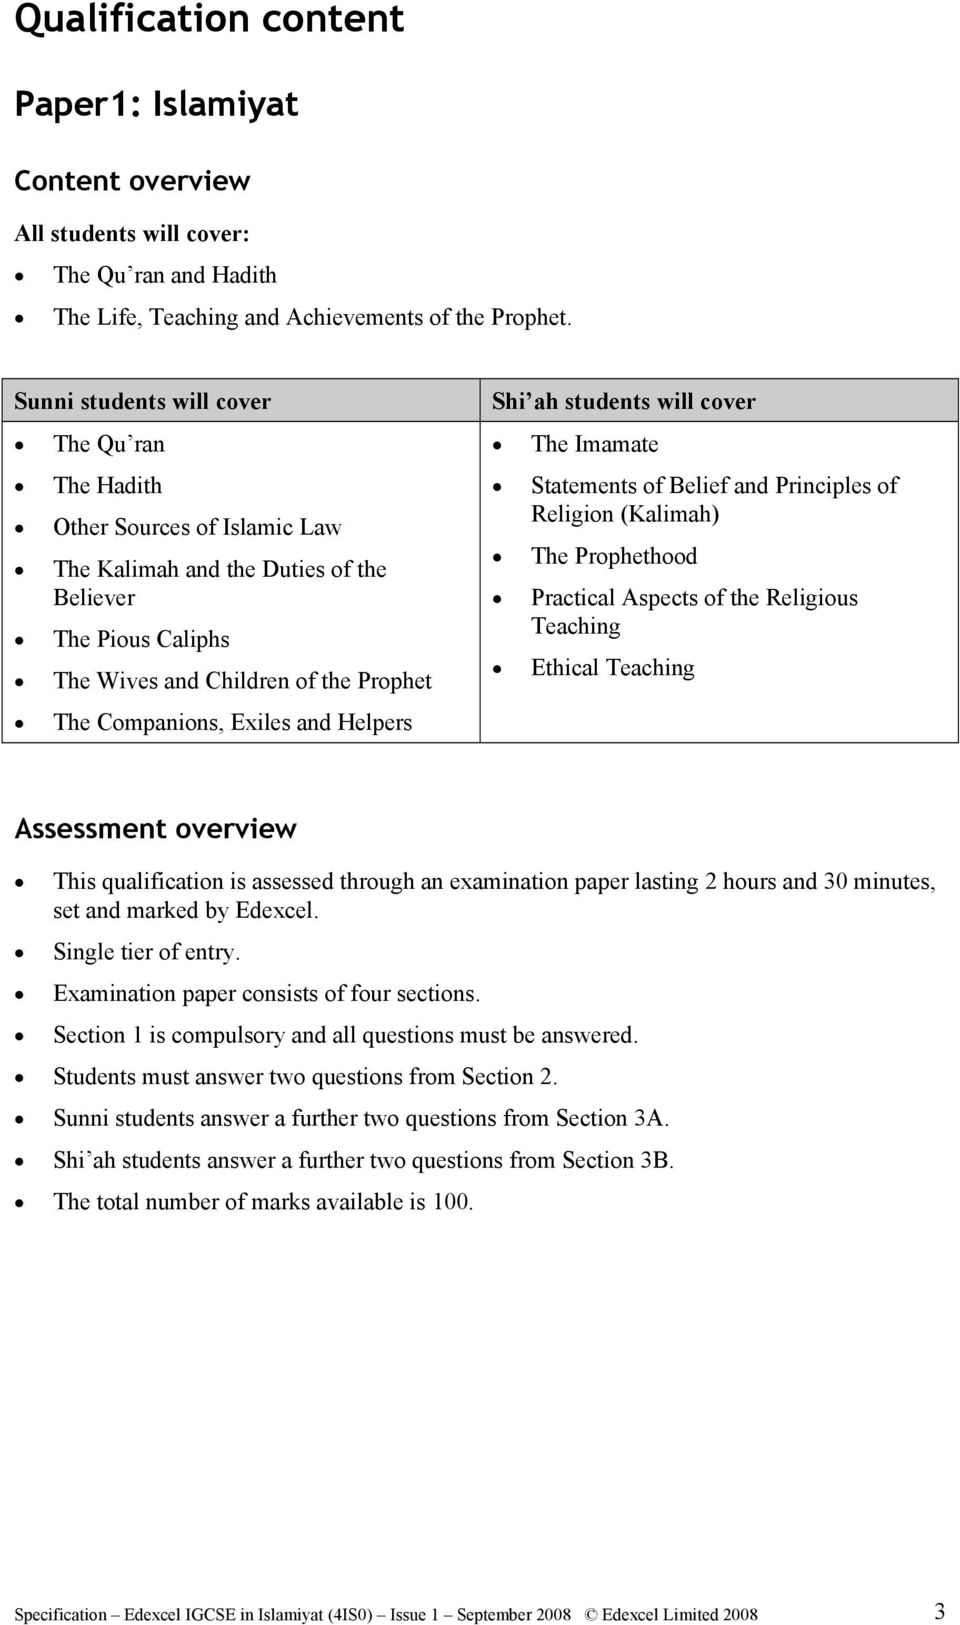 Edexcel past papers for students